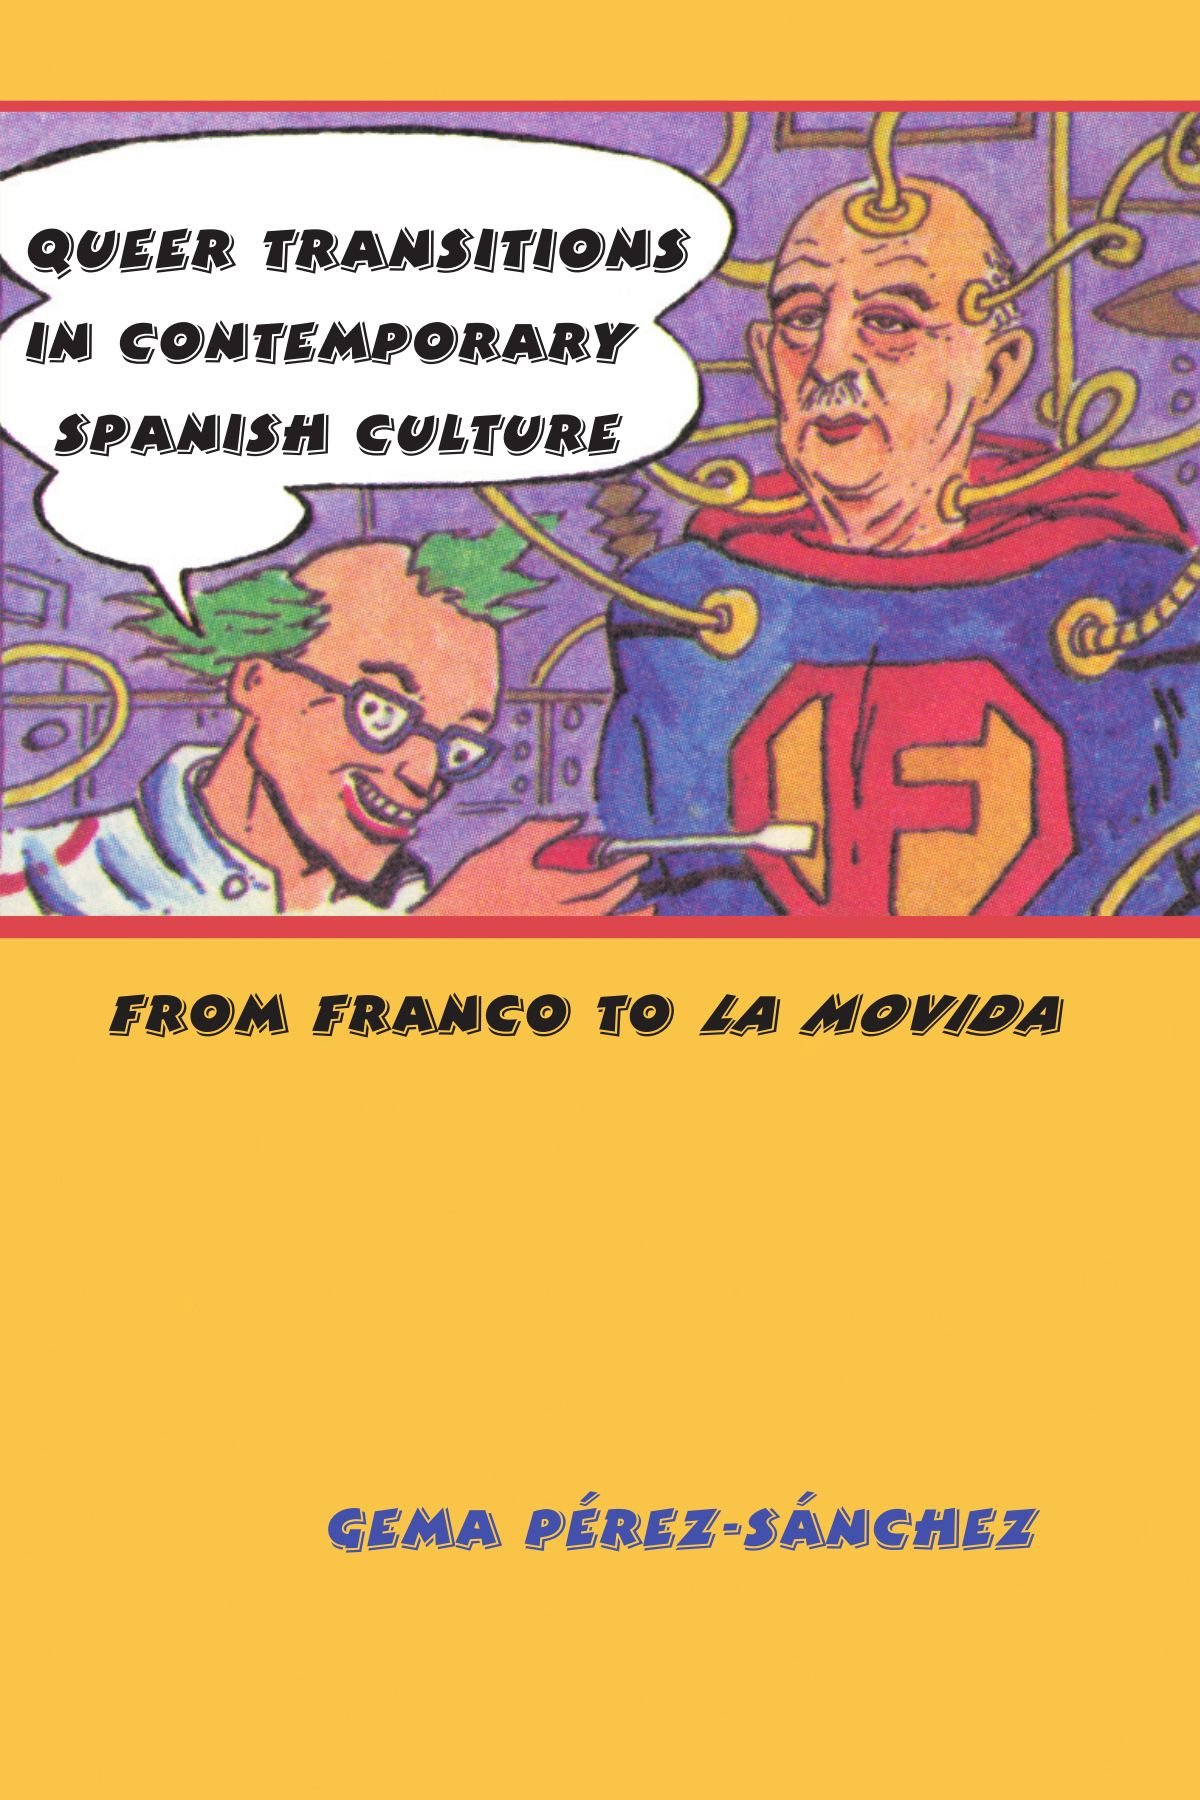 Queer Transitions in Contemporary Spanish Culture: From Franco to LA MOVIDA (SUNY series in Latin American and Iberian Thought and Culture) PDF